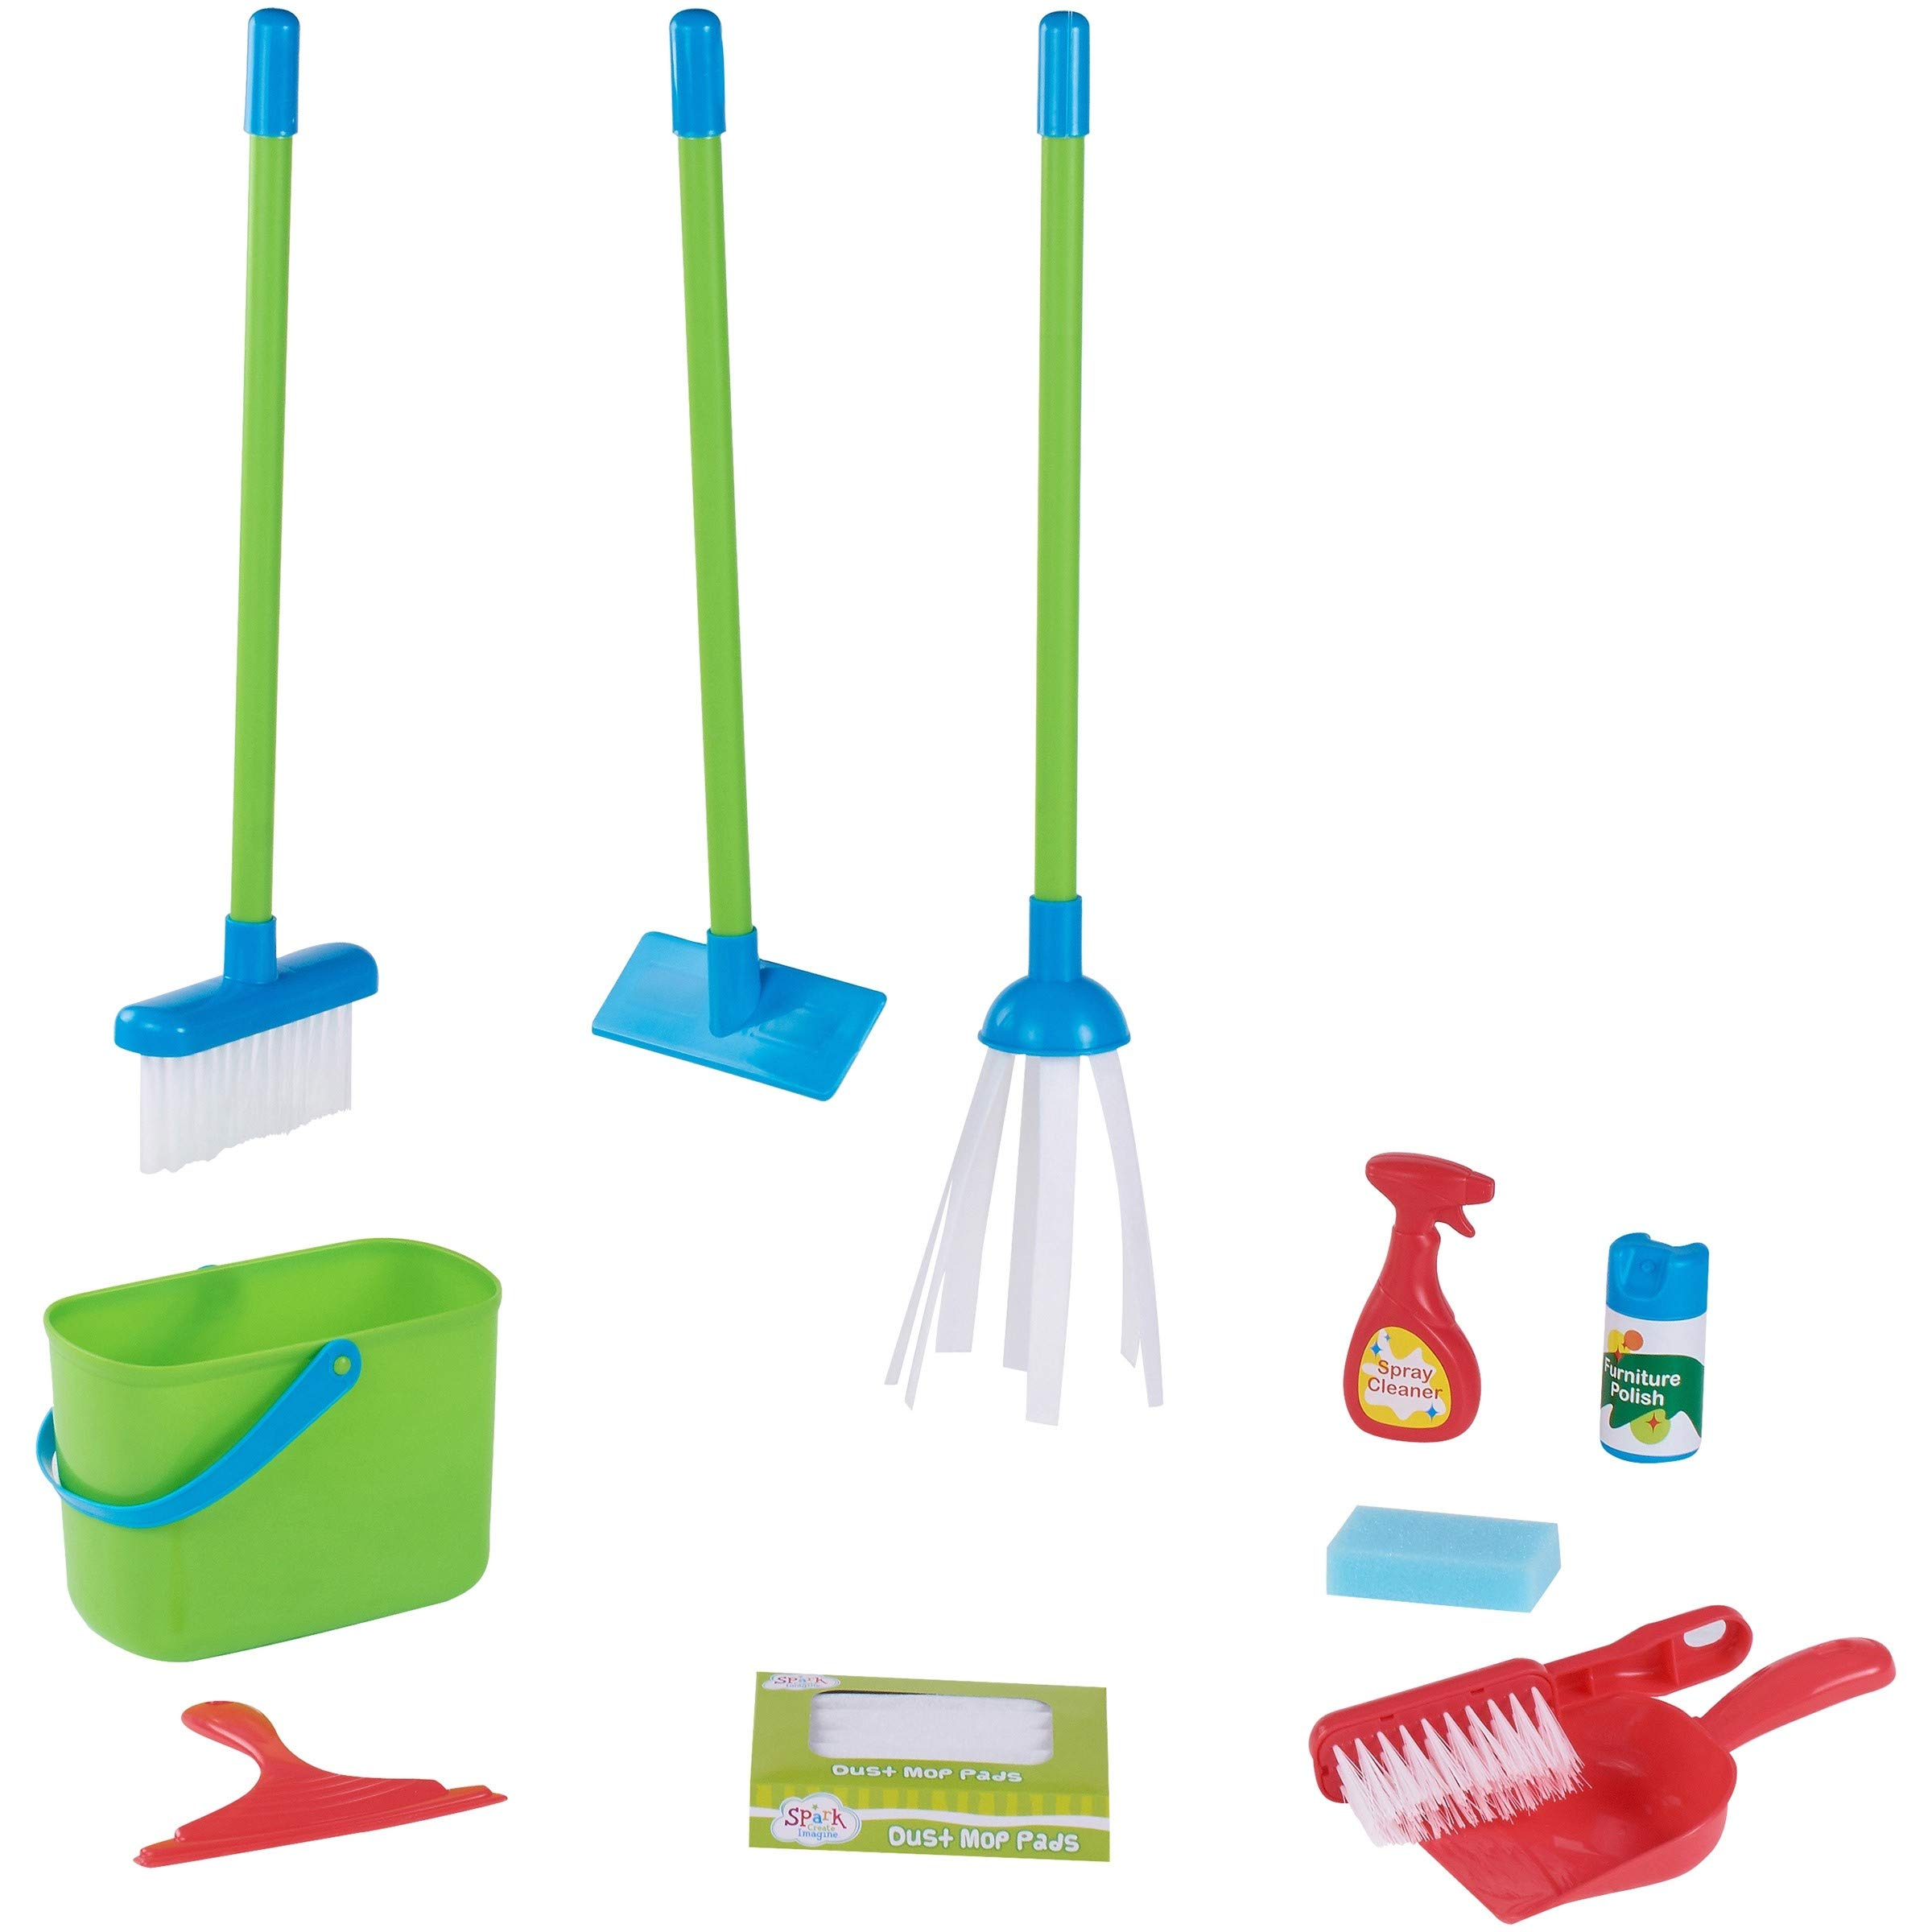 GJR 16-Piece Play Cleaning Set with Bucket is an Adorable Addition to Any Toddler's Toy Collection, and is Sure to Provide Countless Hours of Fun at Home